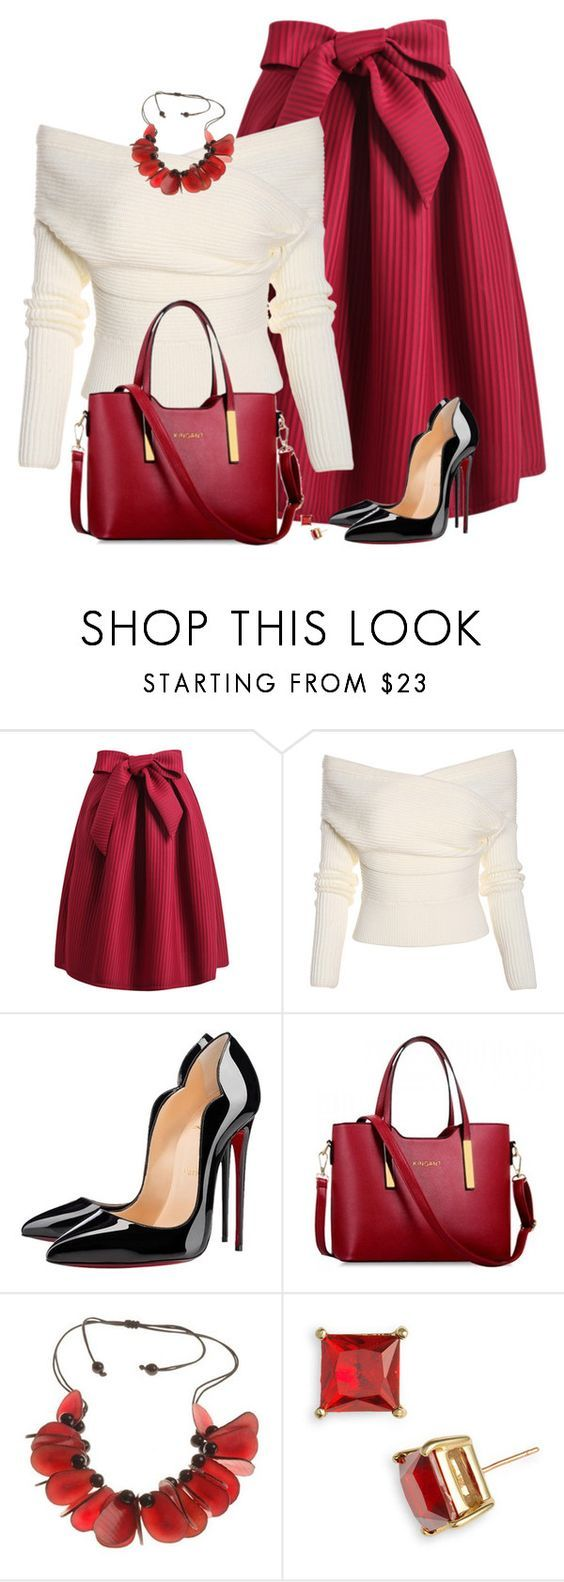 """Christmasy"" by daiscat ❤ liked on Polyvore featuring mode, Christian Louboutin et Kate Spade"